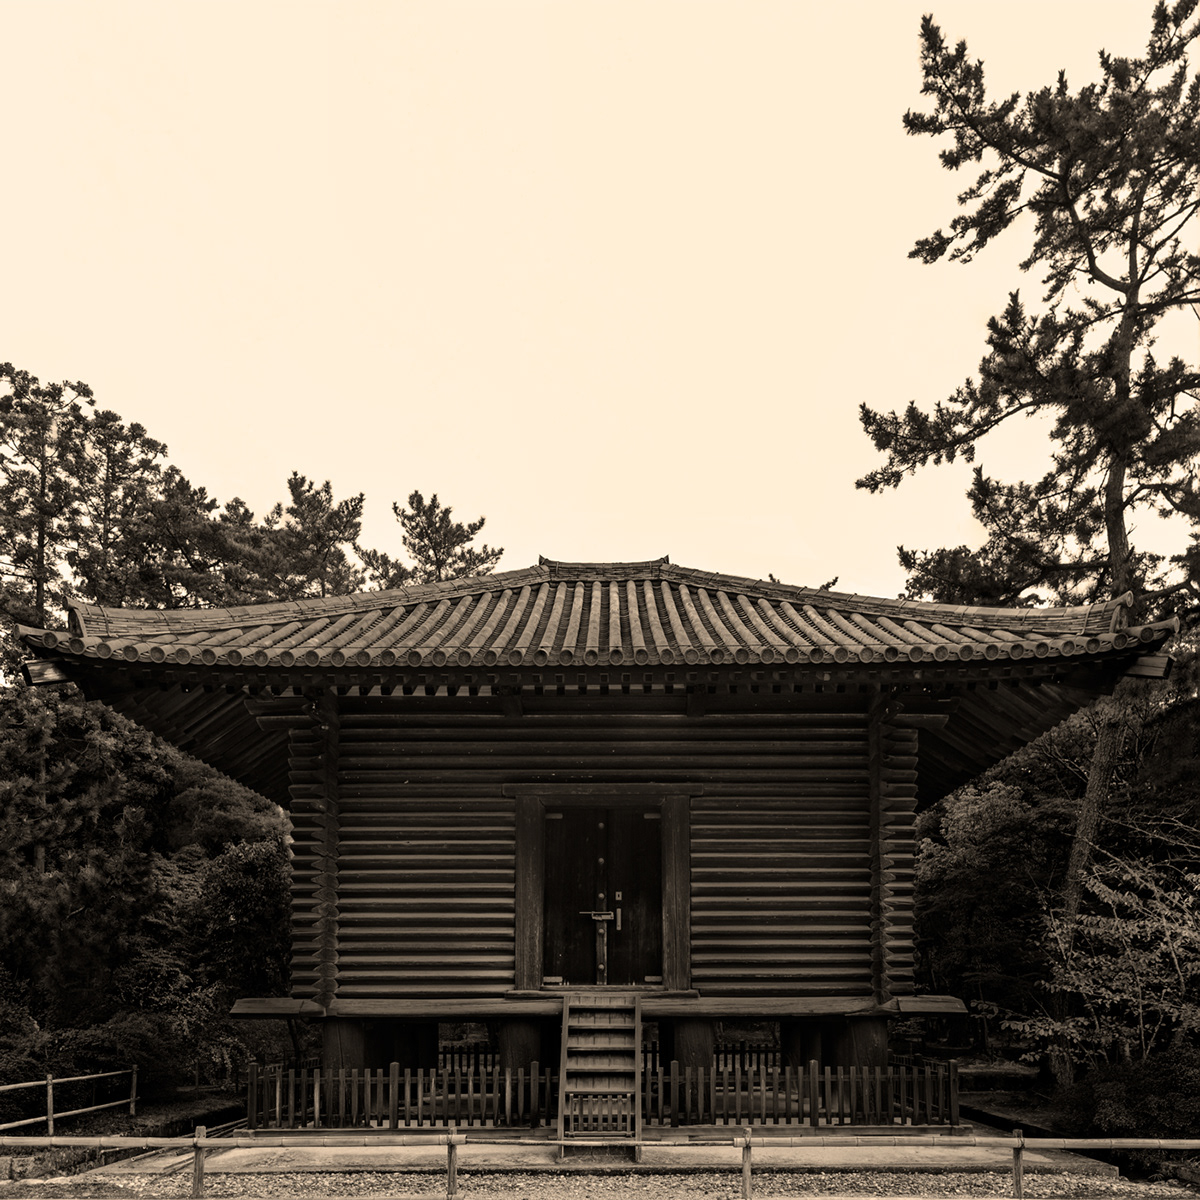 A Japanese style of architecture developed called Wayou Kenchiku. Photographing place: Nara (奈良 日本)